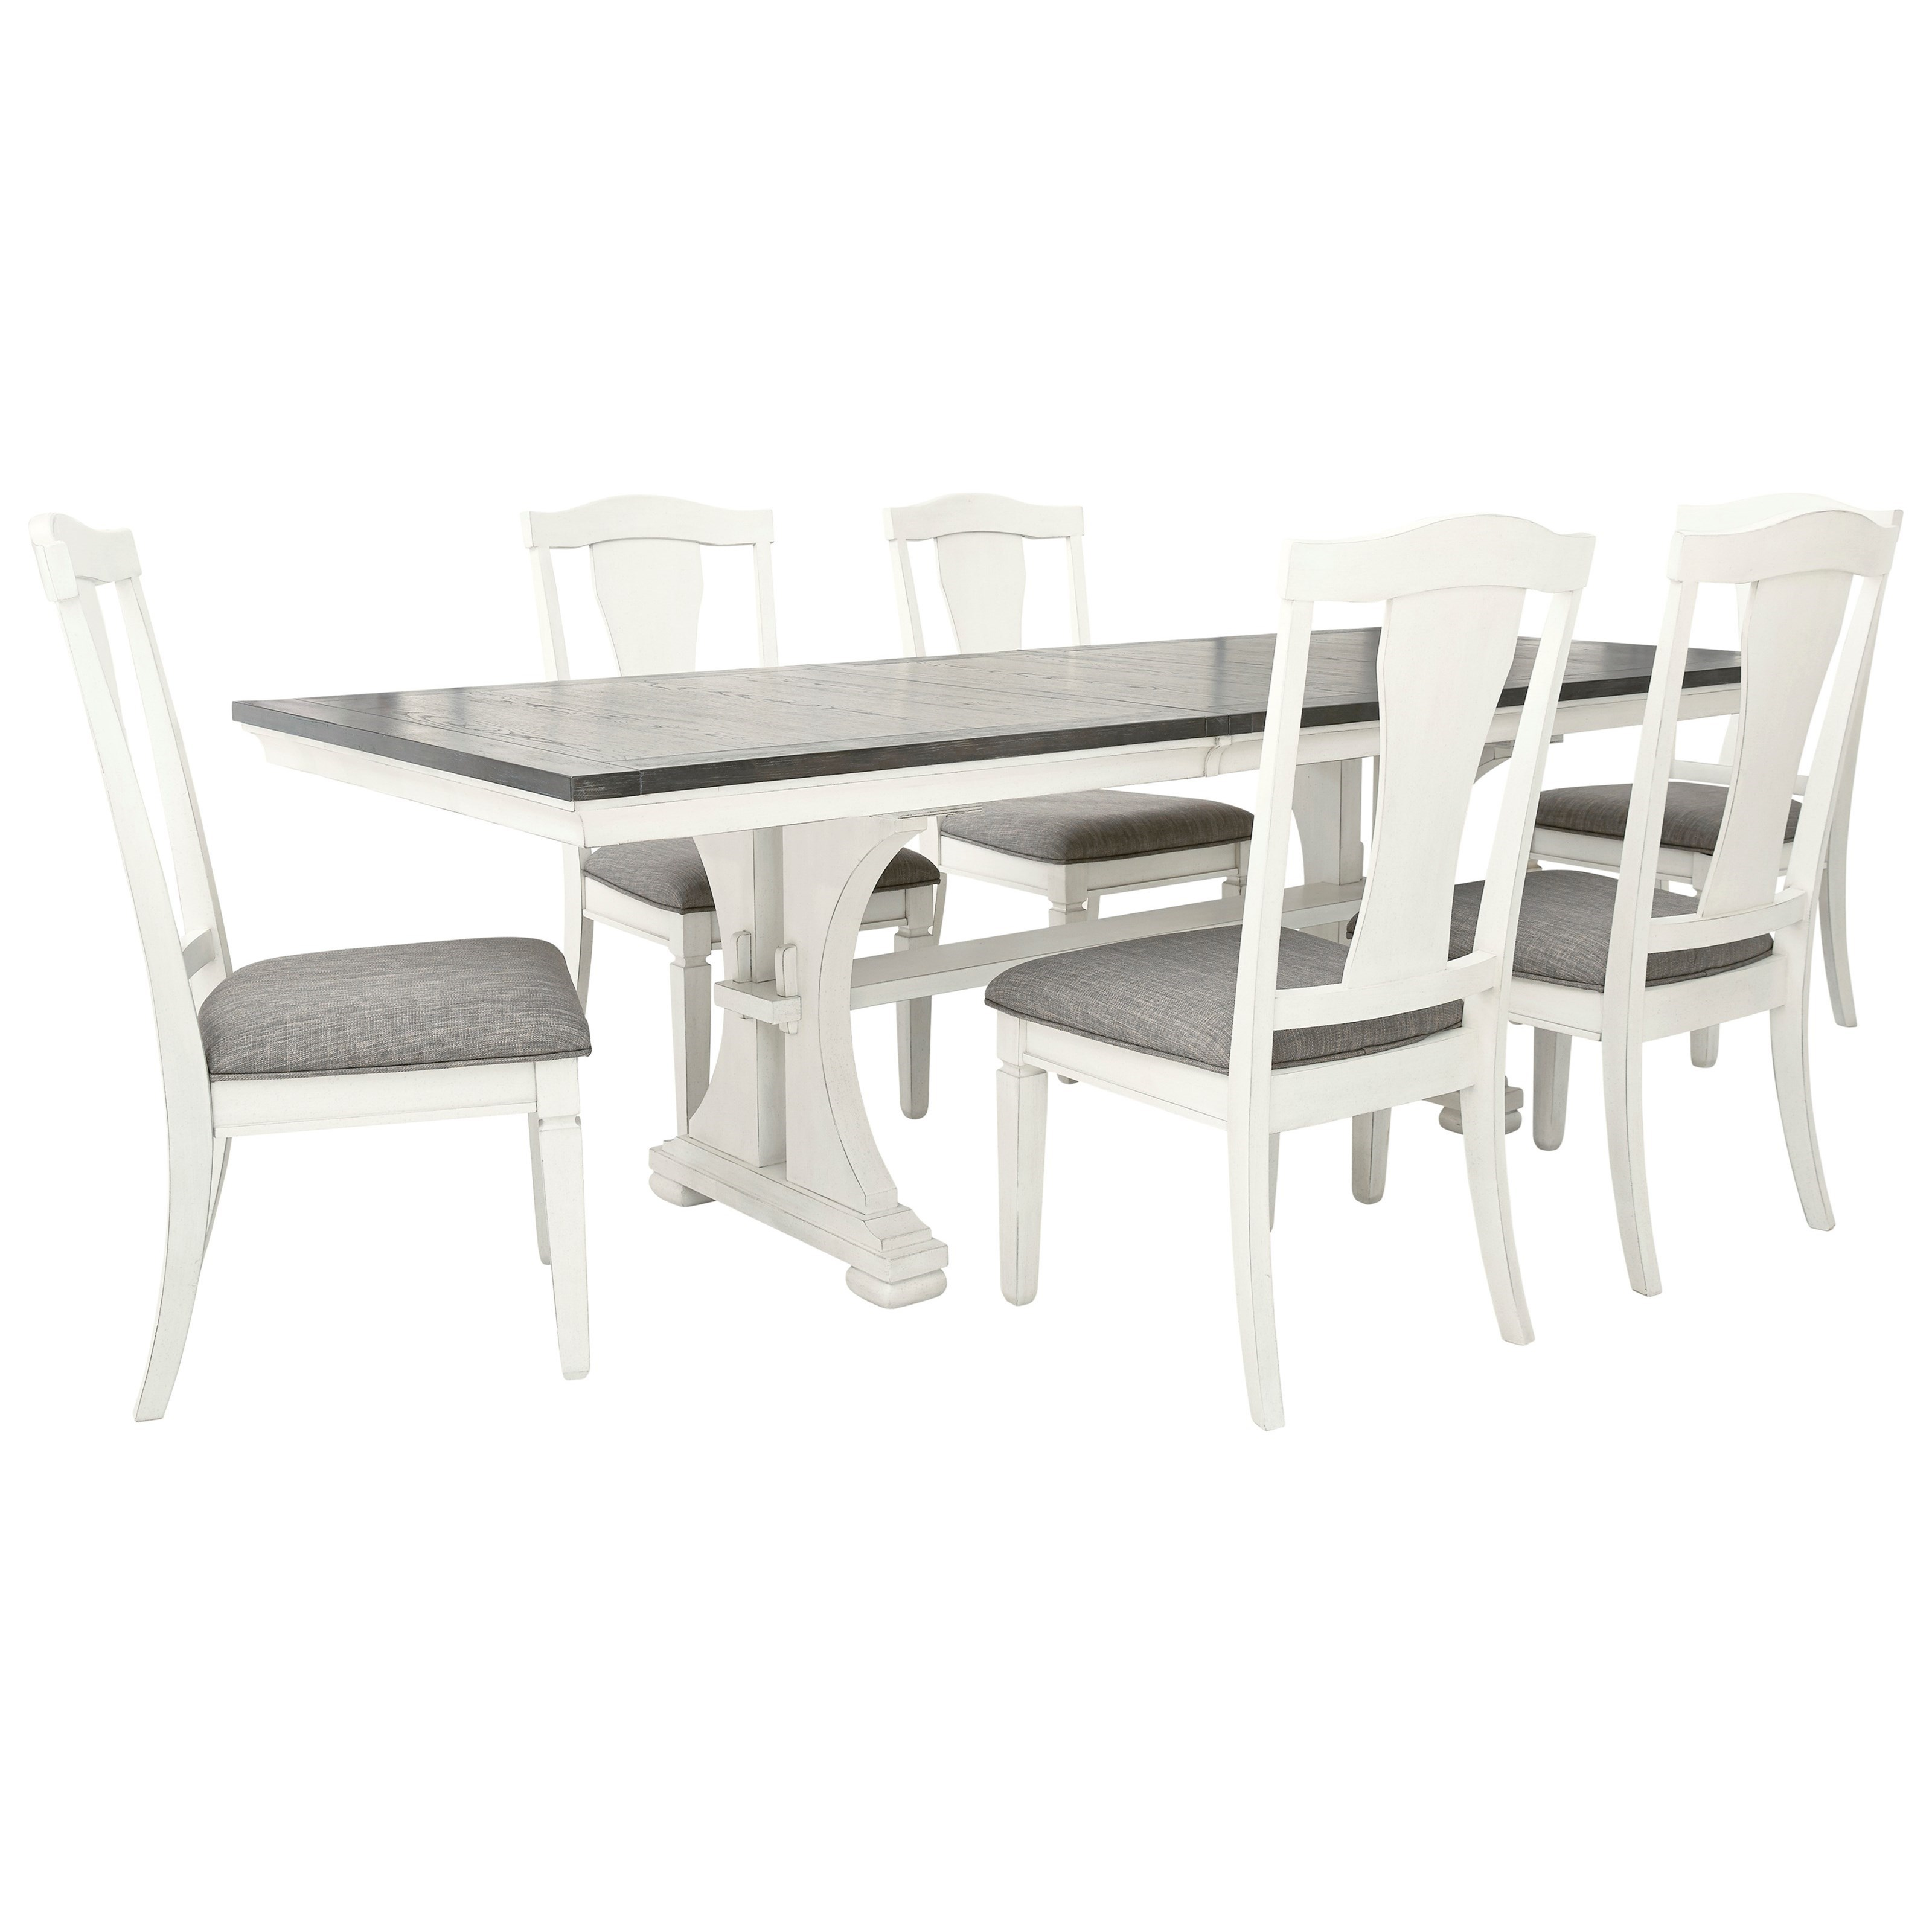 Benchcraft Nashbryn 7 Piece Dining Set With Upholstered Chairs Value City Furniture Dining 7 Or More Piece Sets